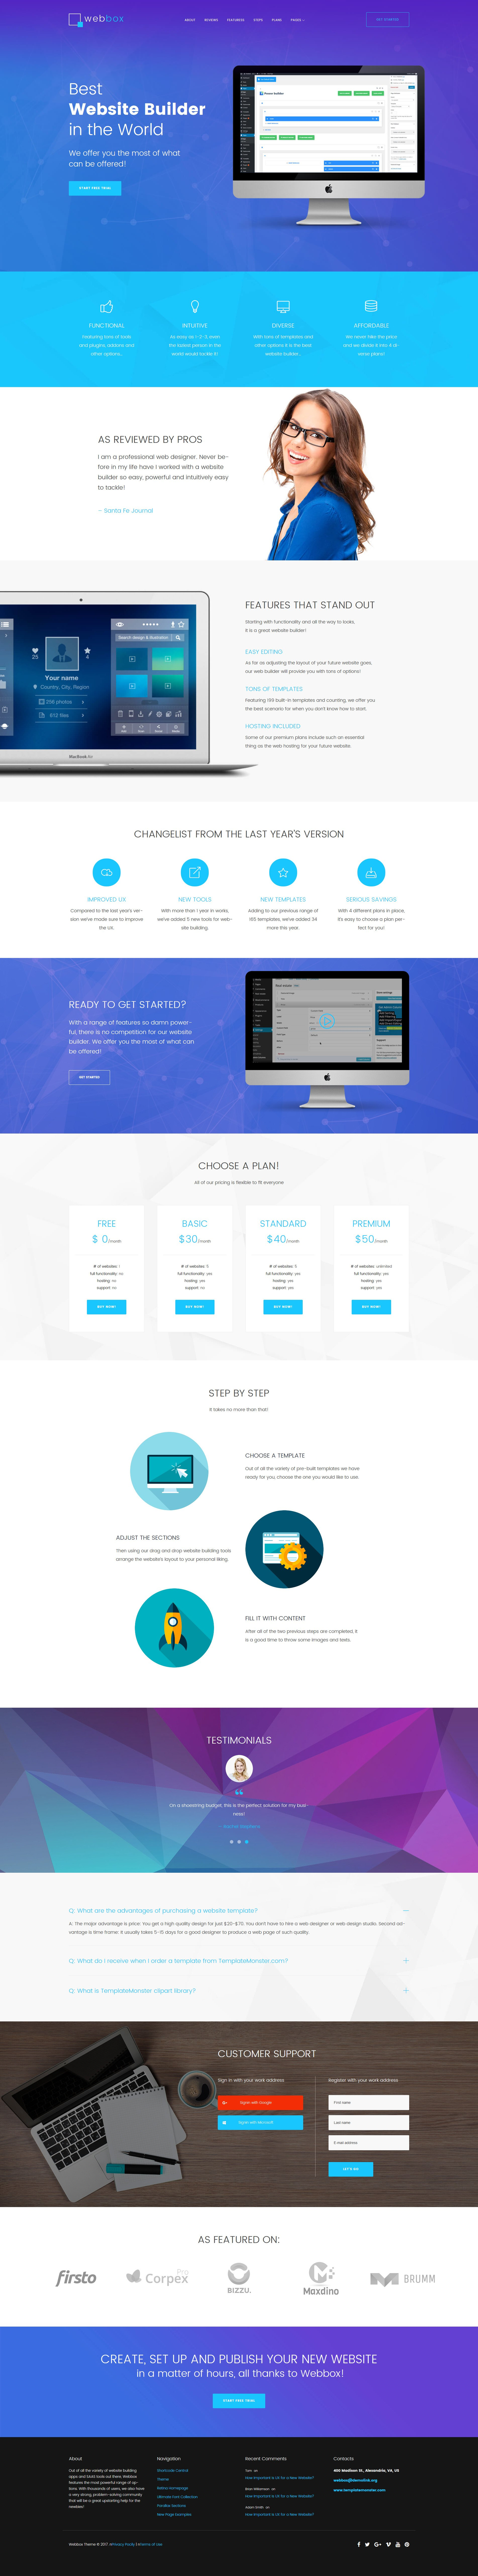 Webbox - One Page Product Landing WordPress Theme